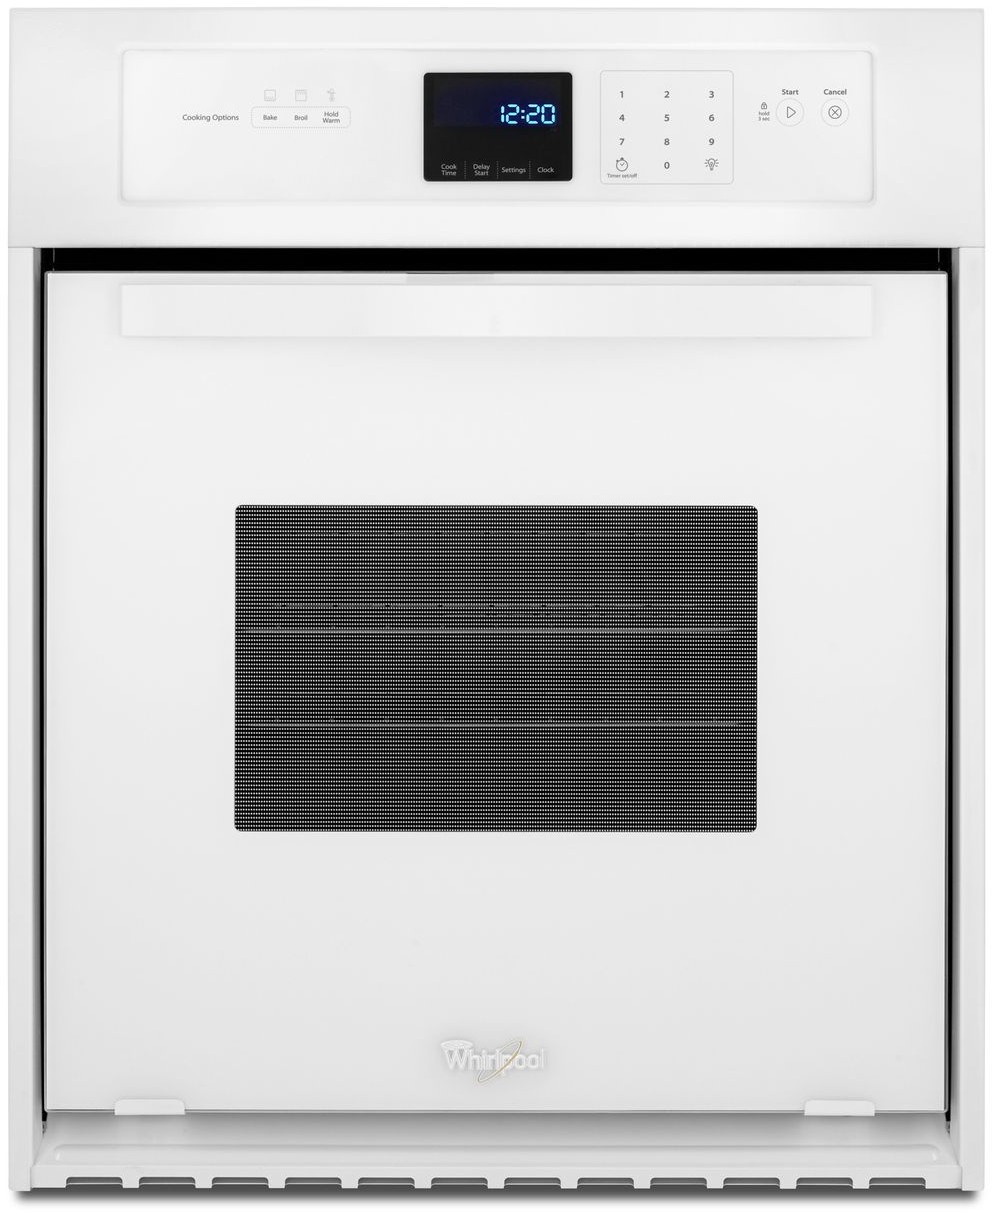 Whirlpool white ice single wall oven - Whirlpool White Ice Single Wall Oven 12